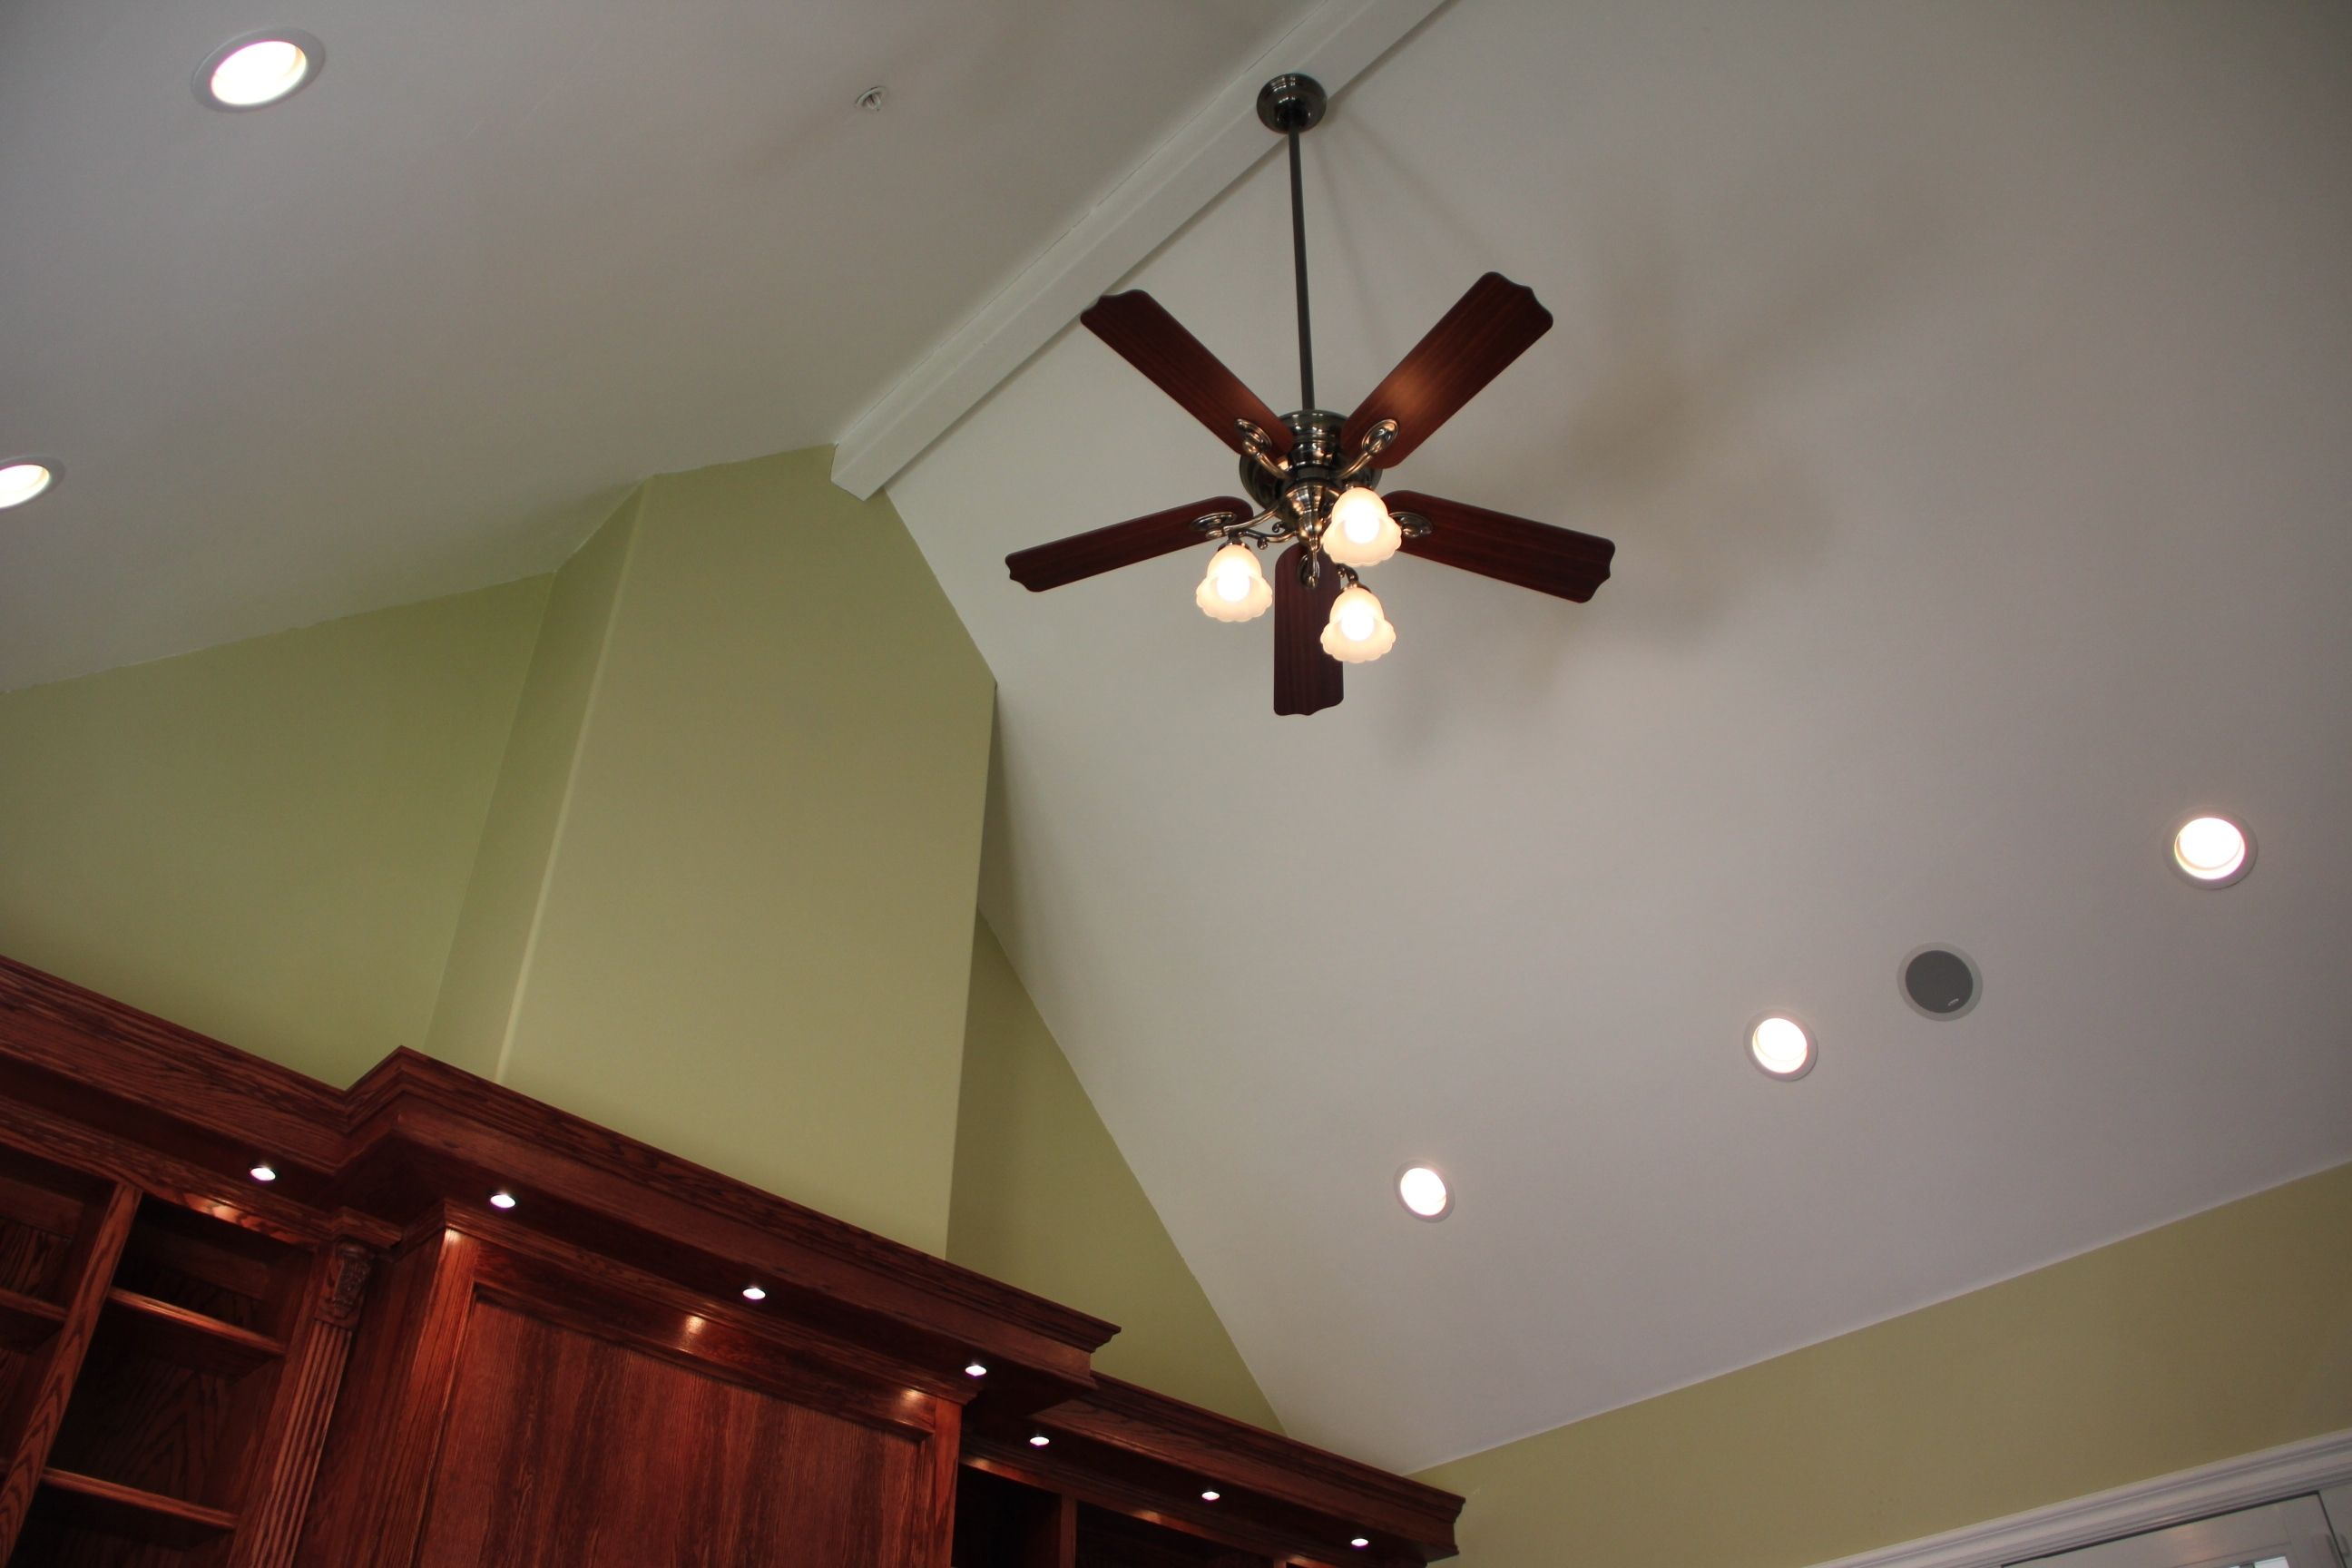 Ceiling Fan Bracket For Vaulted Ceiling Ceiling Fan Ceiling Fan Bracket Vaulted Ceiling Lighting